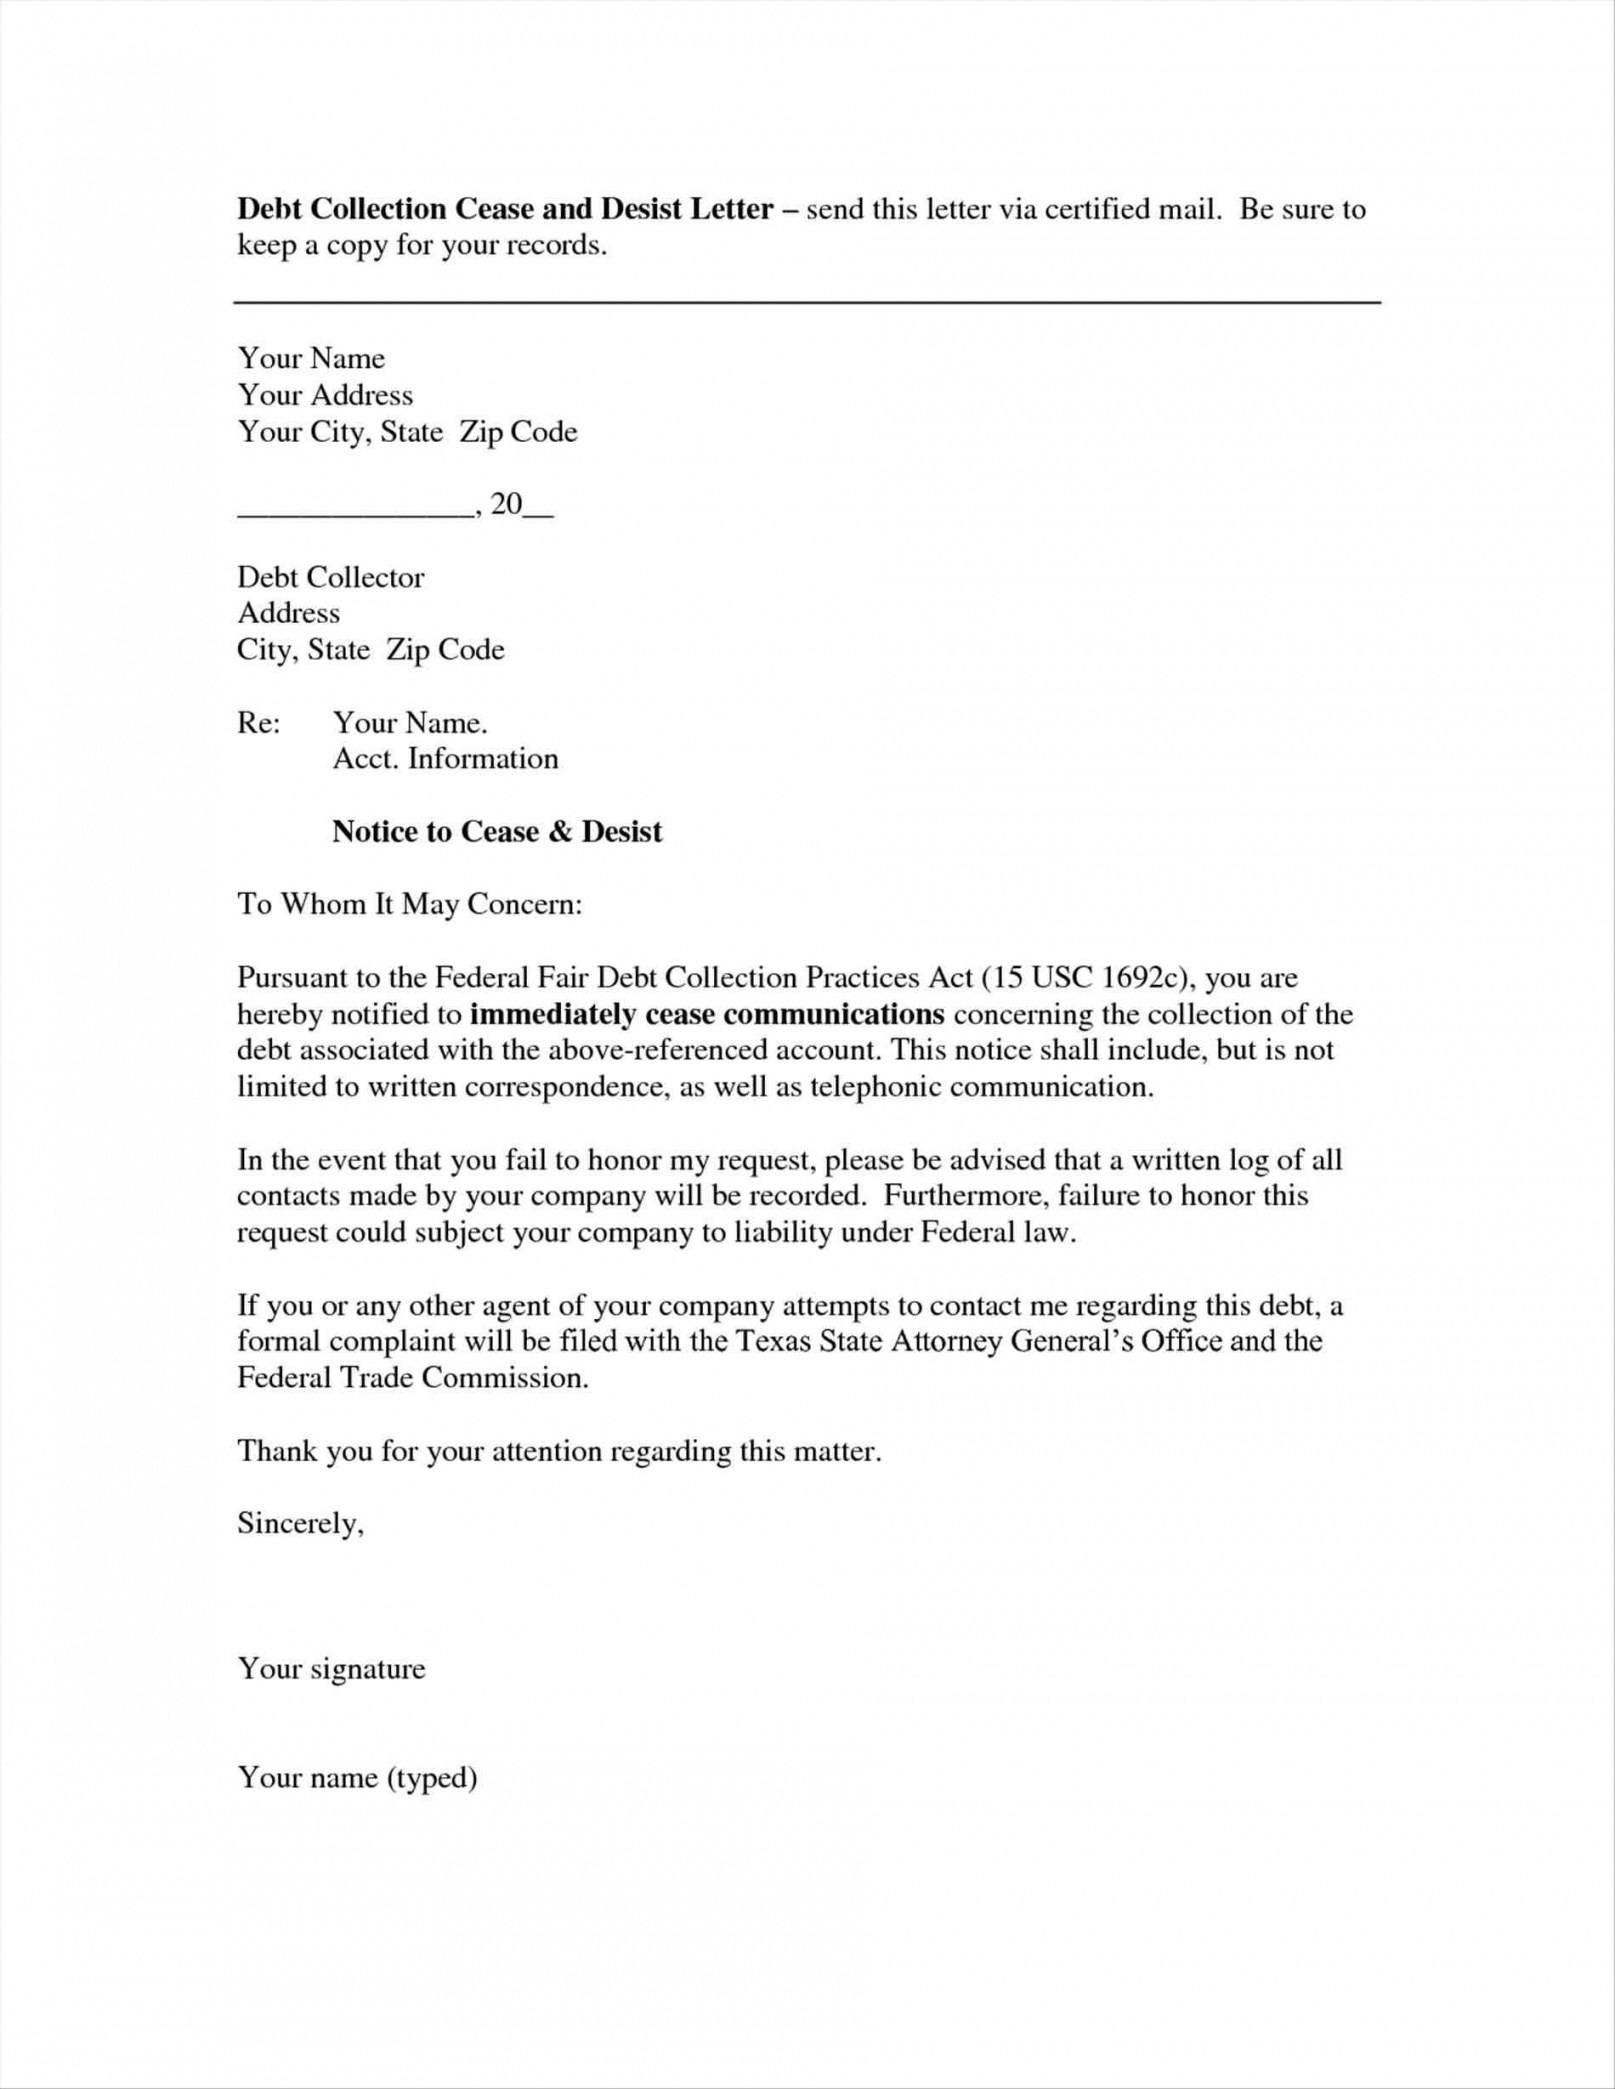 Creditor Cease and Desist Letter Template - How to Write Debt Collection Letter Letter format formal Sample